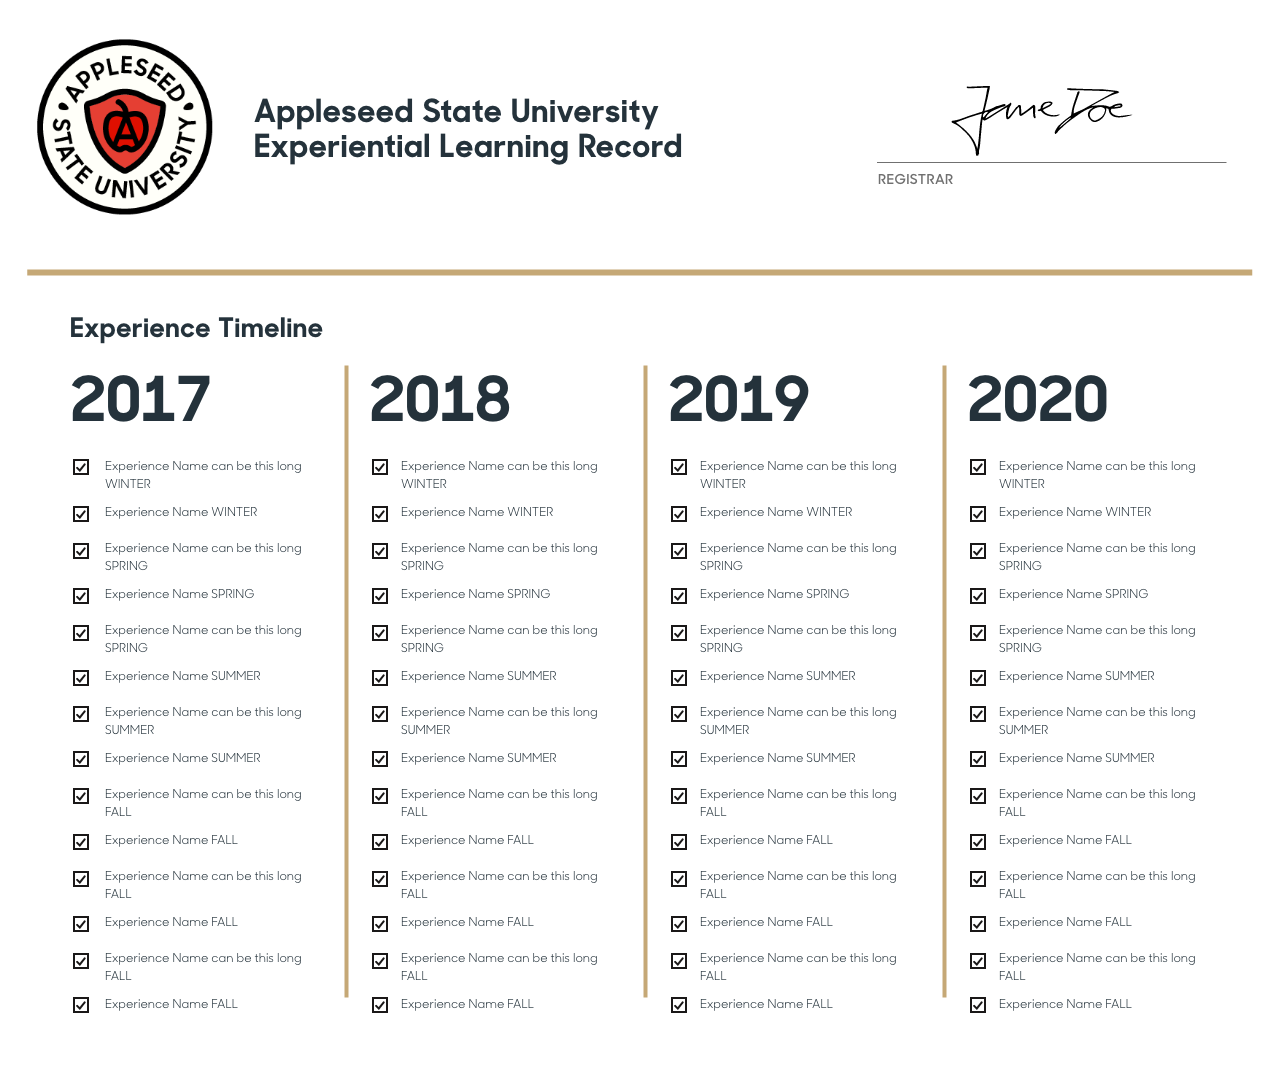 02_Suitable_ Experiential Learning Record_Timeline@2x